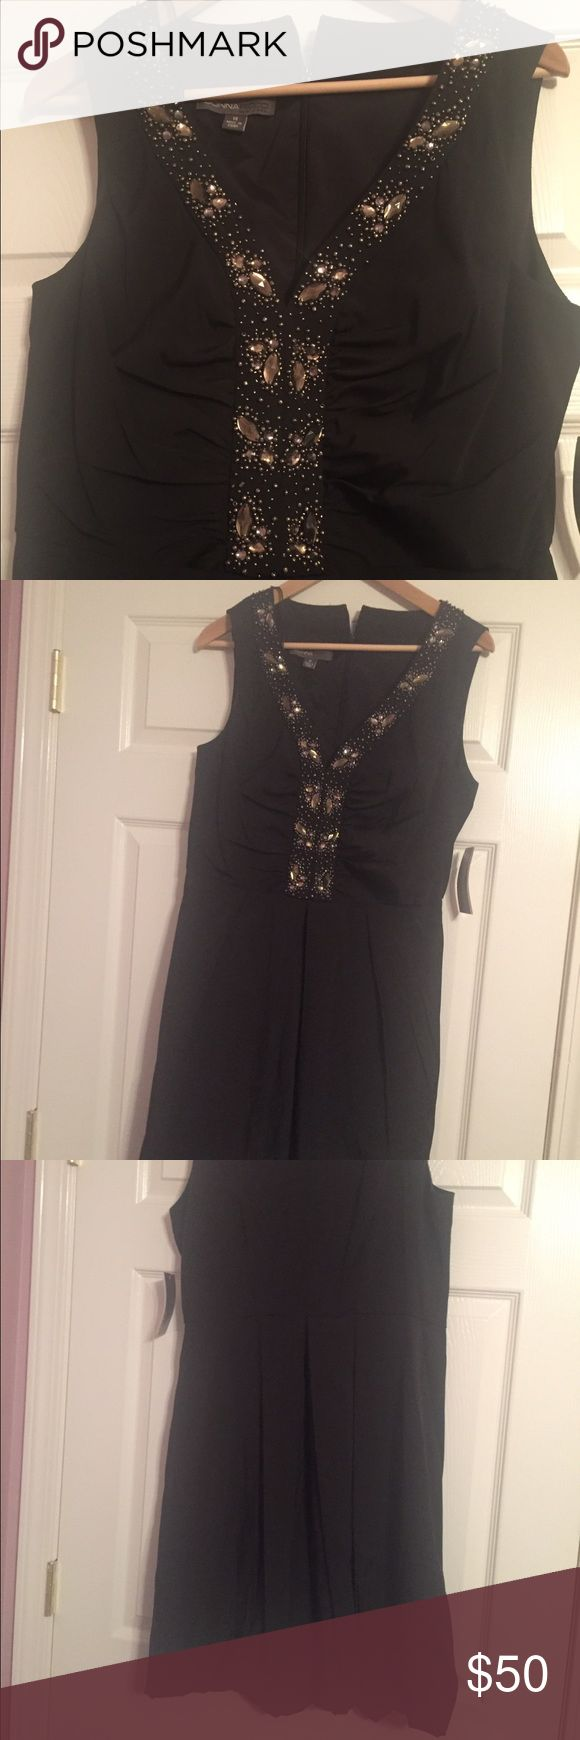 NWT Donna Ricco Black Dress Size 14 New Donna Ricco Black fit and flare dress with full/bubble skirt, beaded design and v-neck. Size 14, from a non-smoking home. Donna Ricco Dresses Wedding